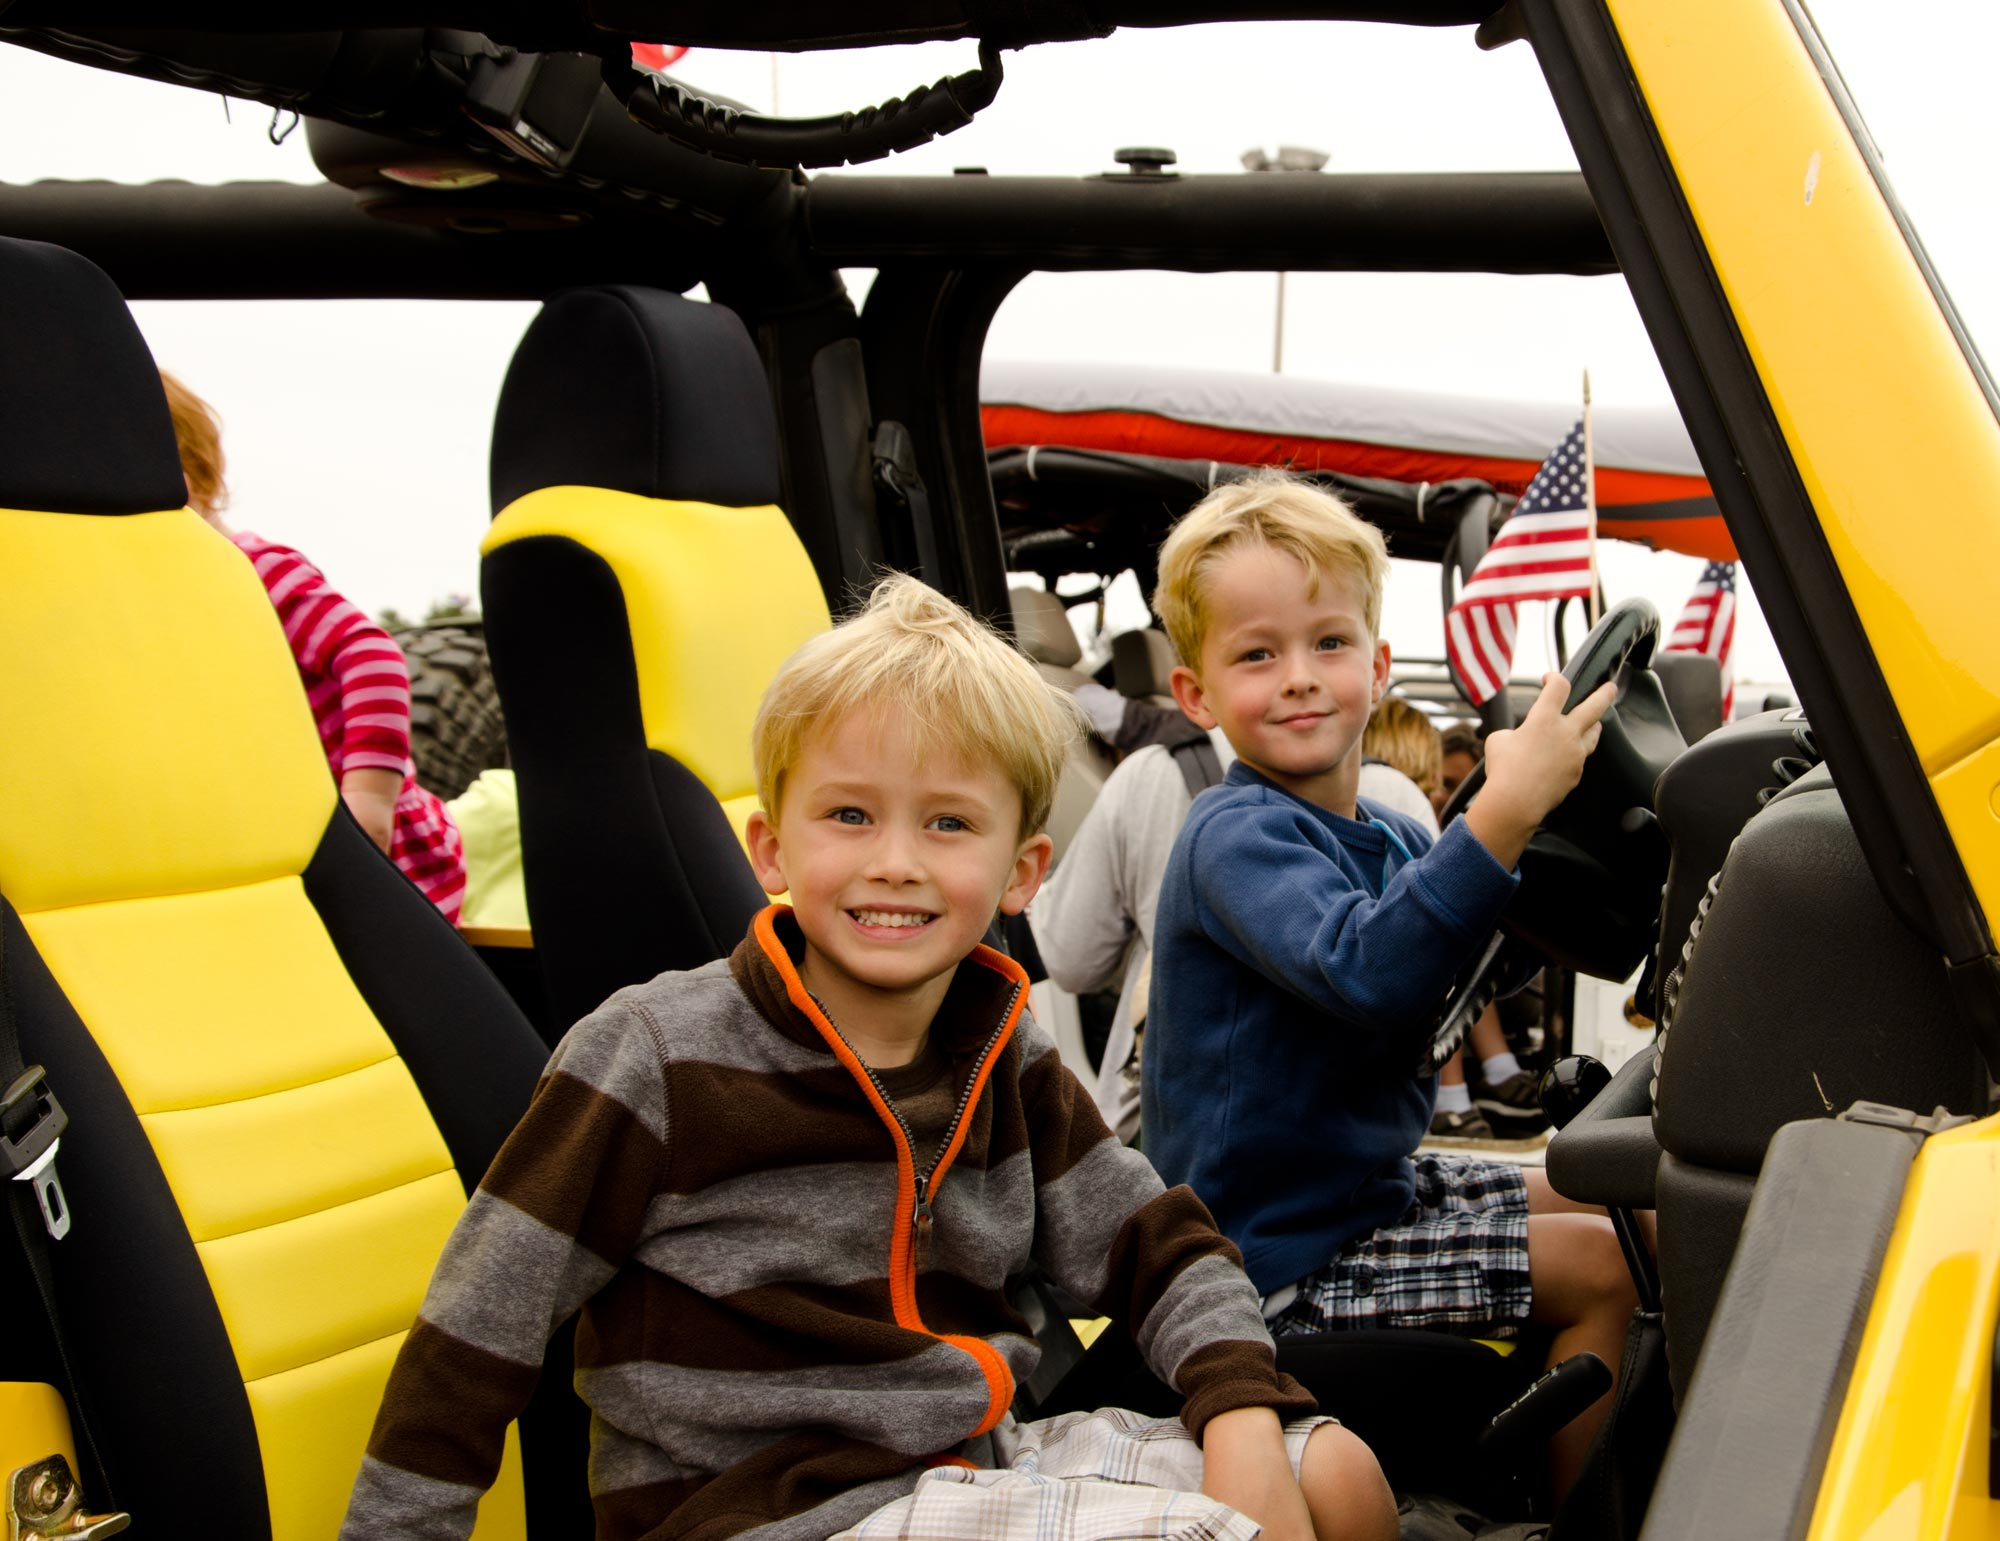 Touch A Truck San Diego started seven years ago with a vision to give kids the opportunity to sit in the driver's seats of vehicles big and small.